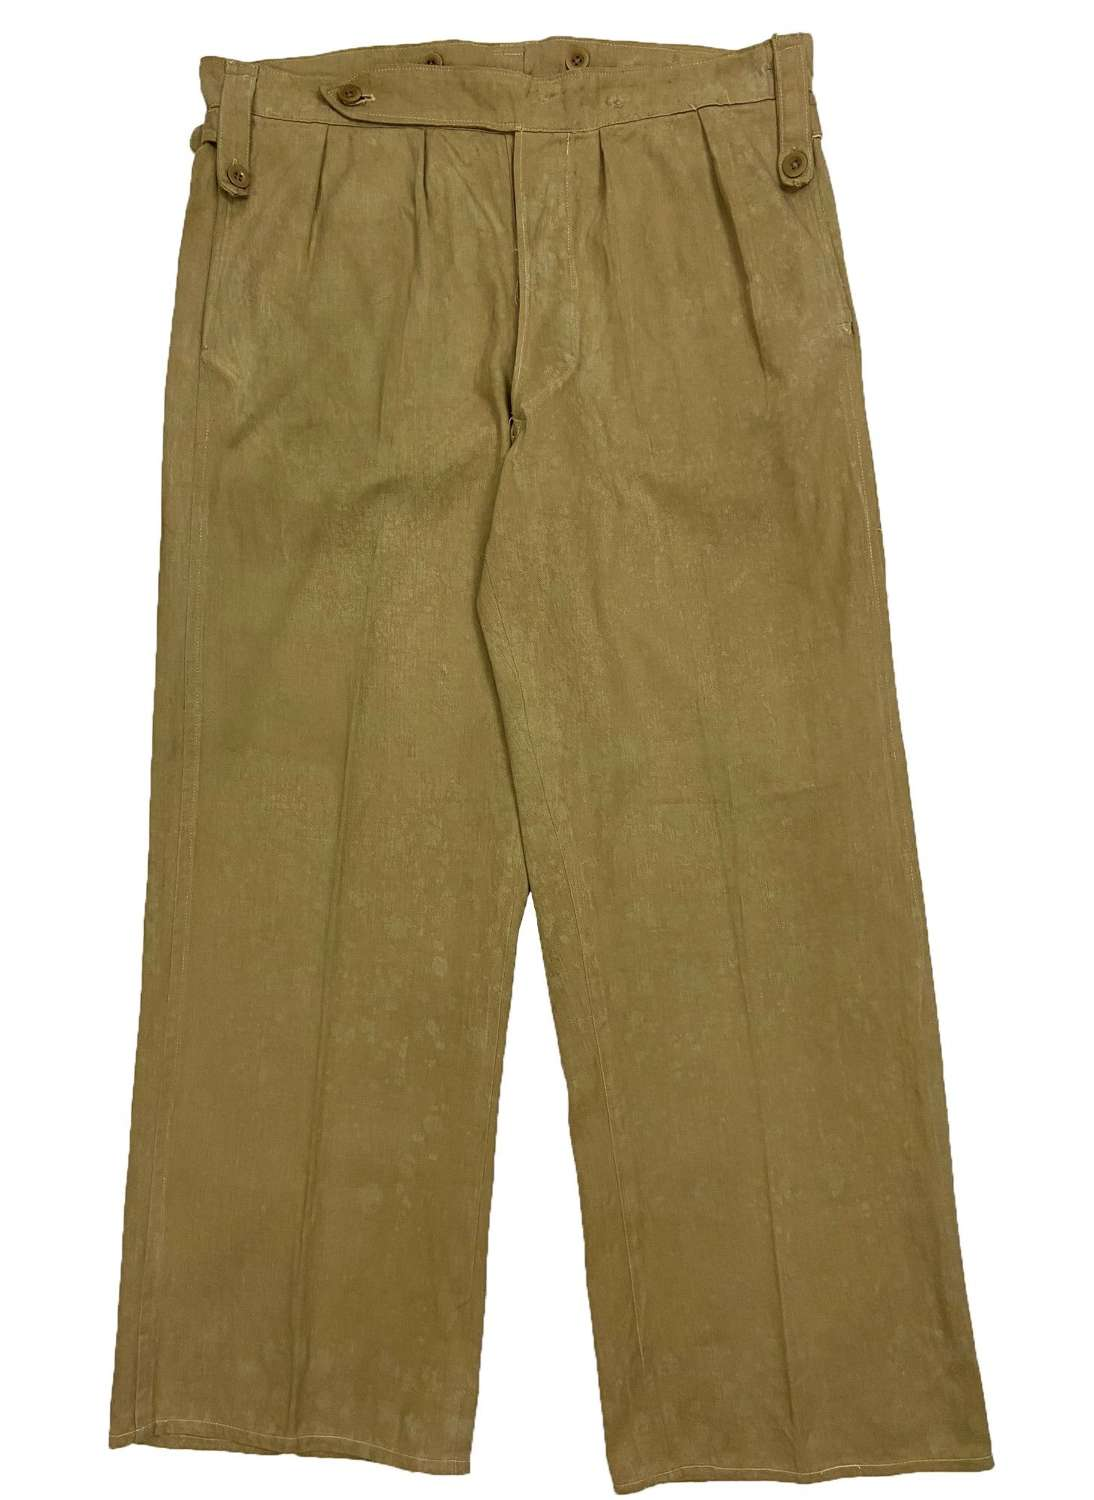 Original 1940s Indian Made Khaki Drill Trousers